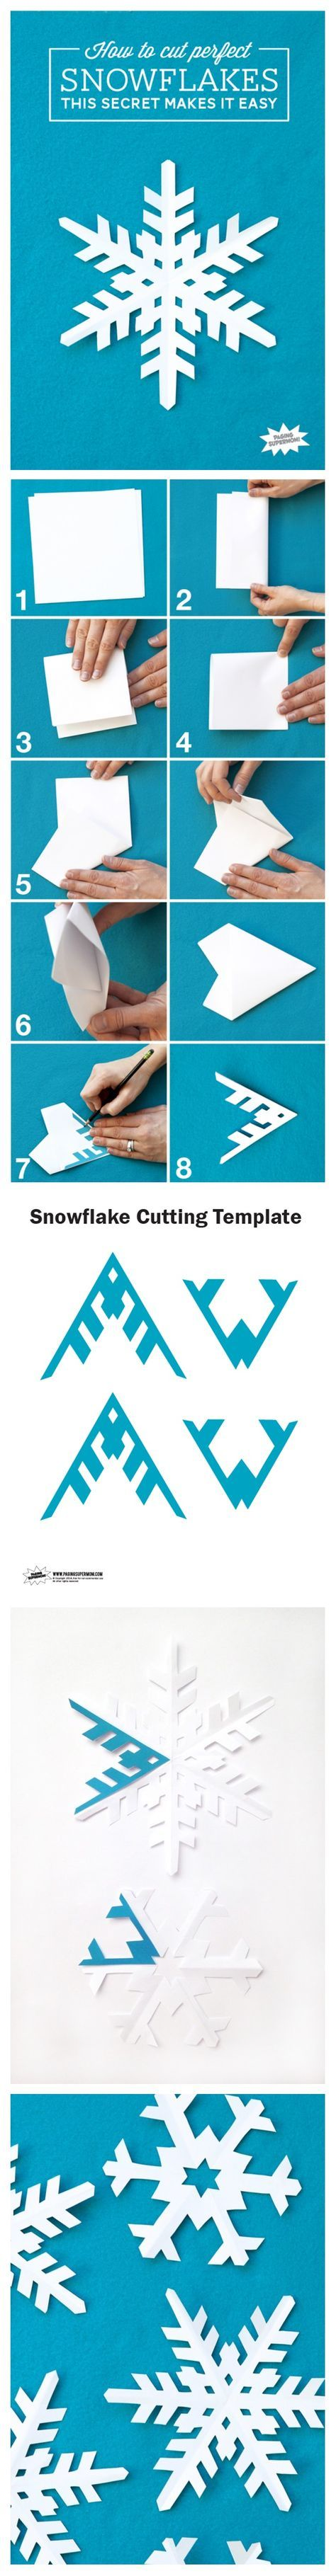 HOW TO CUT PERFECT SNOWFLAKES...There's a secret!